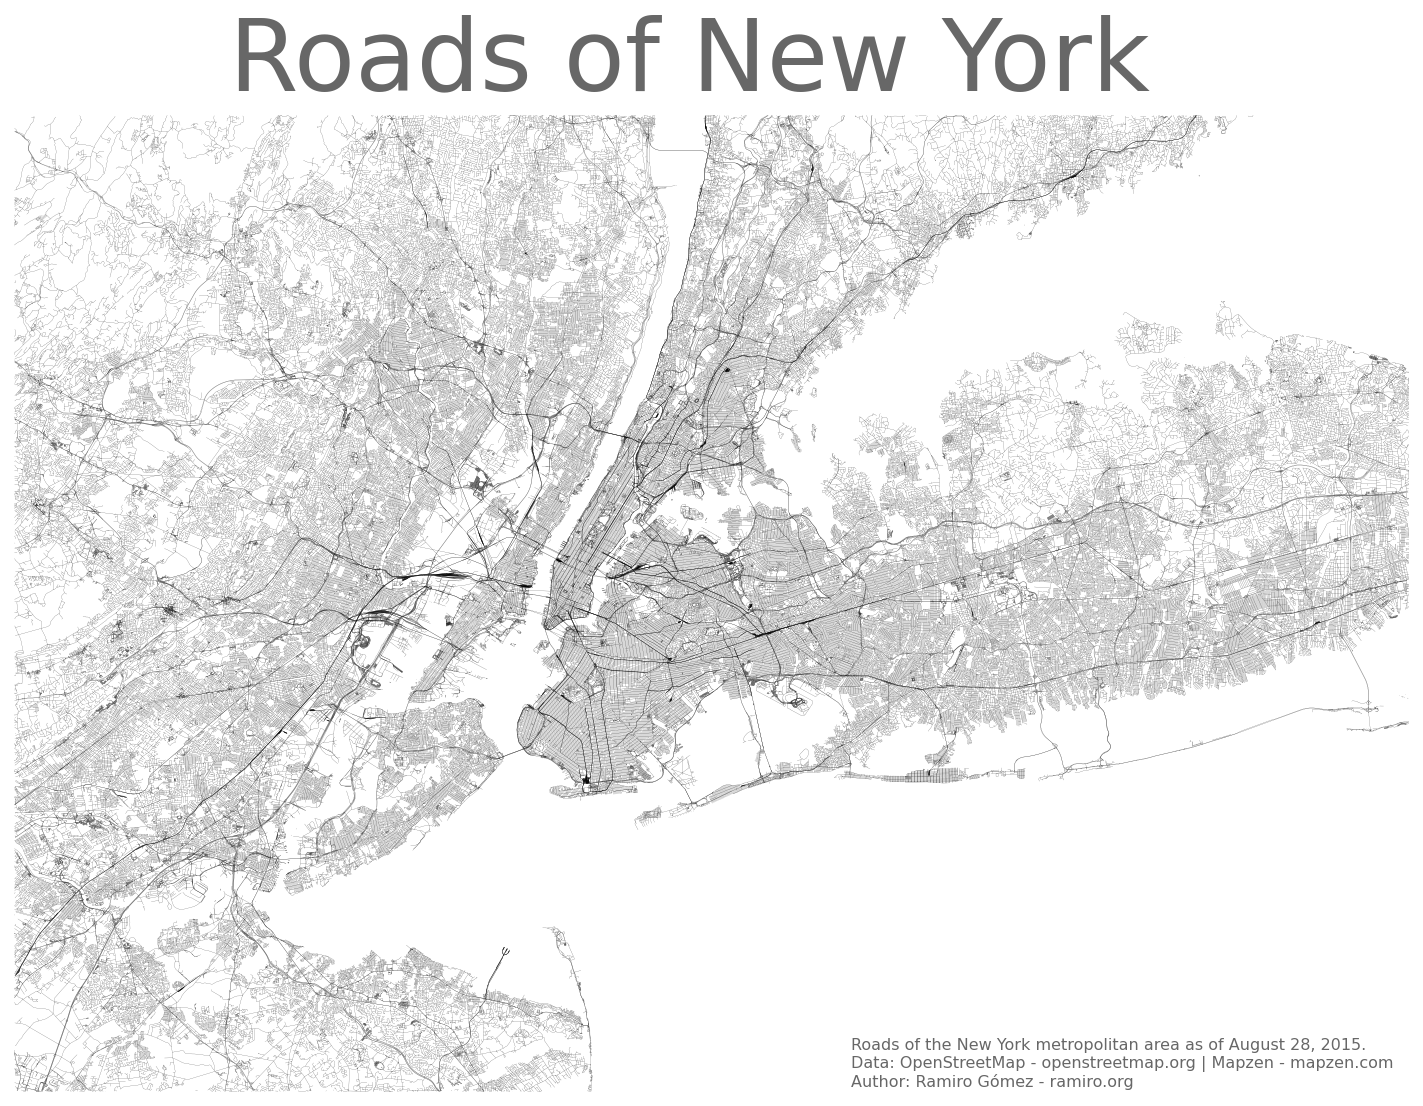 New York City metropolitan area drawn only from roads